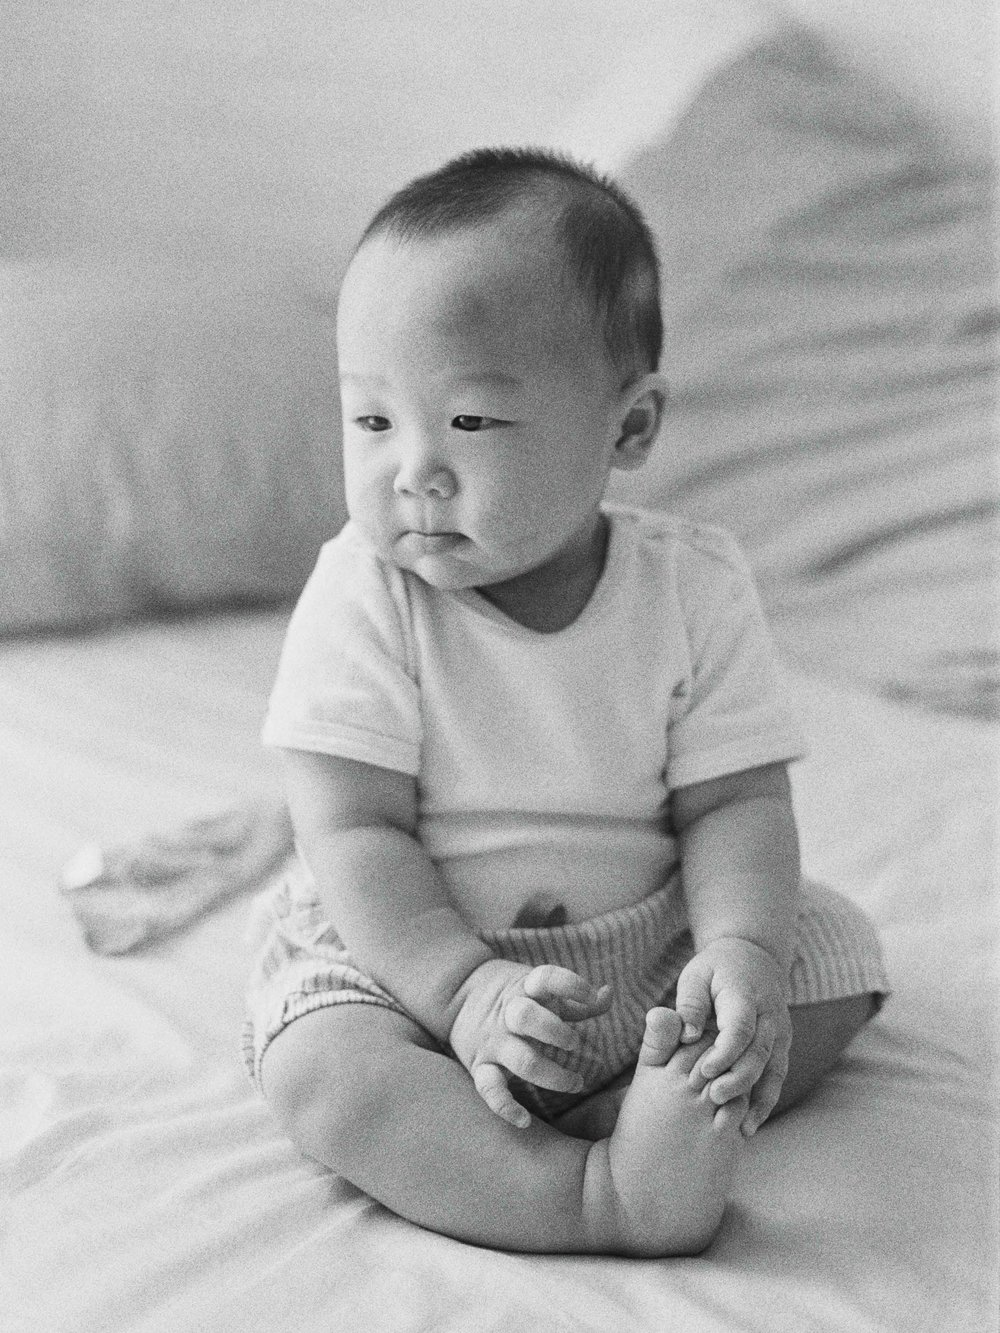 Cody-At Home-Simple-Baby Photography-8 Months Old-Studio June-Film Photography-Jakarta-22.jpg